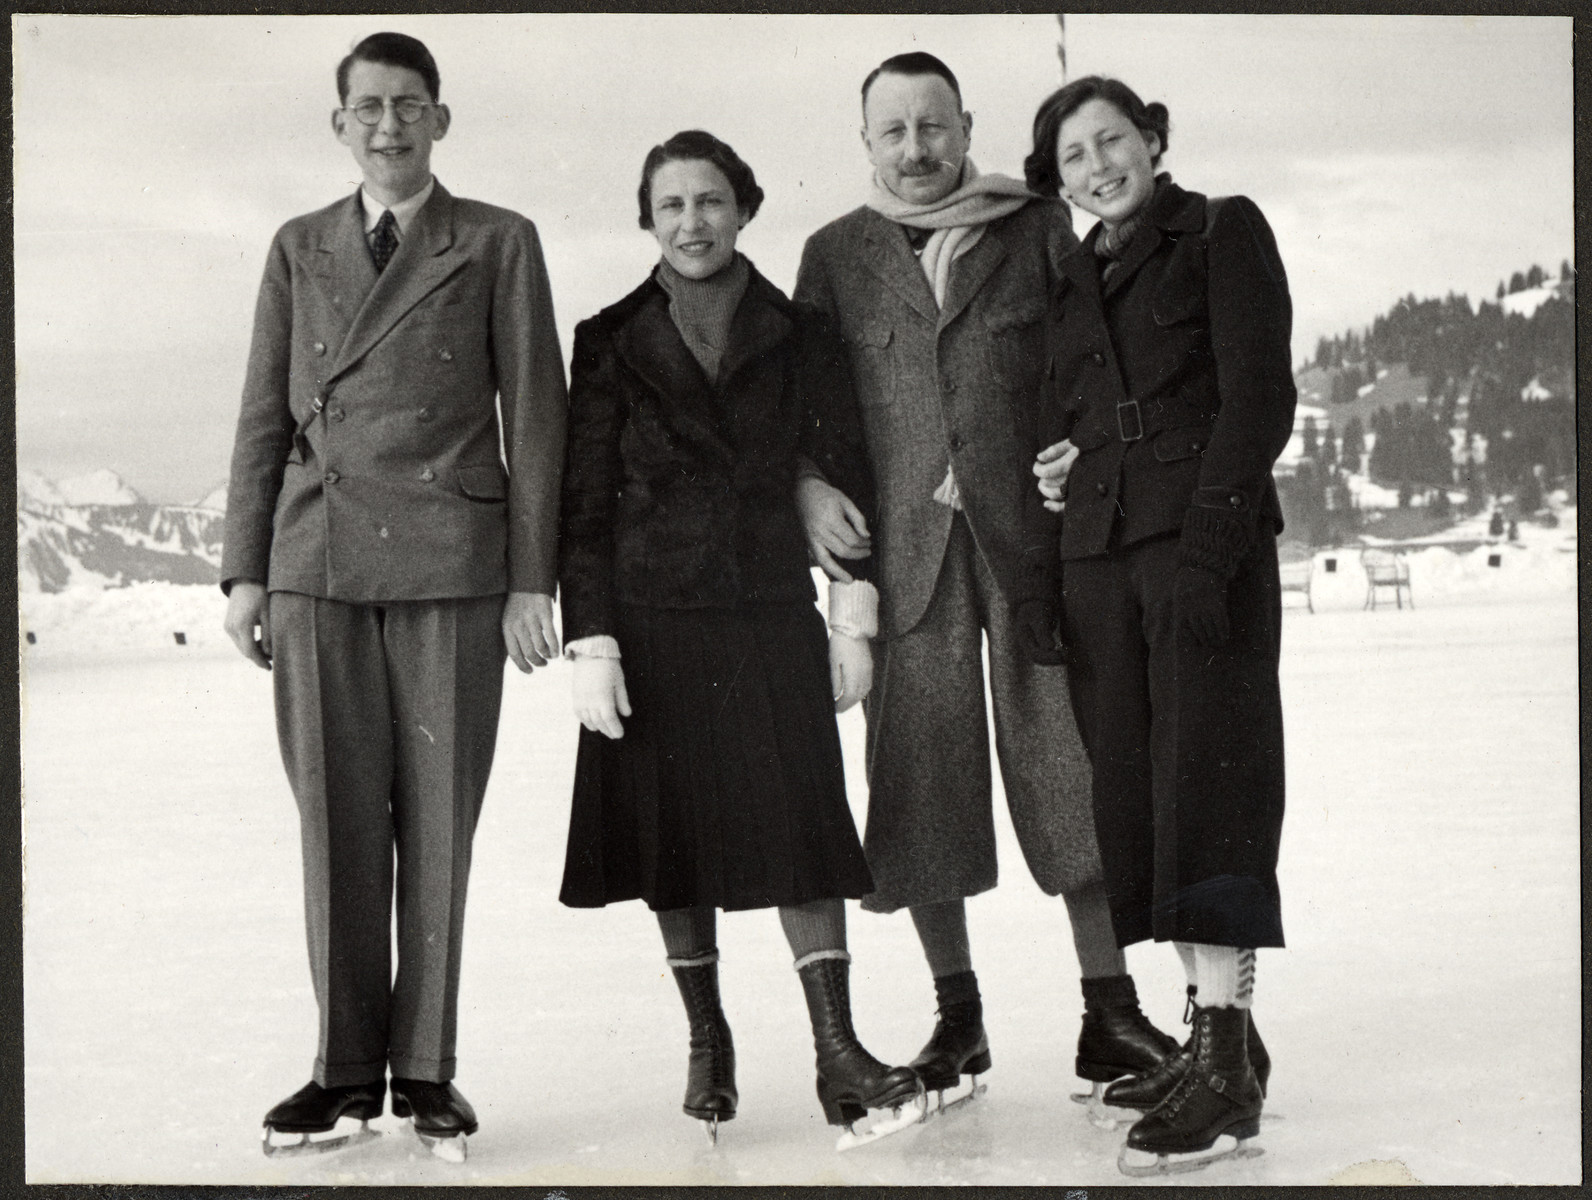 The Bing family goes ice skating outdoors.  Pictured from left to right are John Bing, Erna Stern Bing, Ernst Bing, and Annelise Bing.